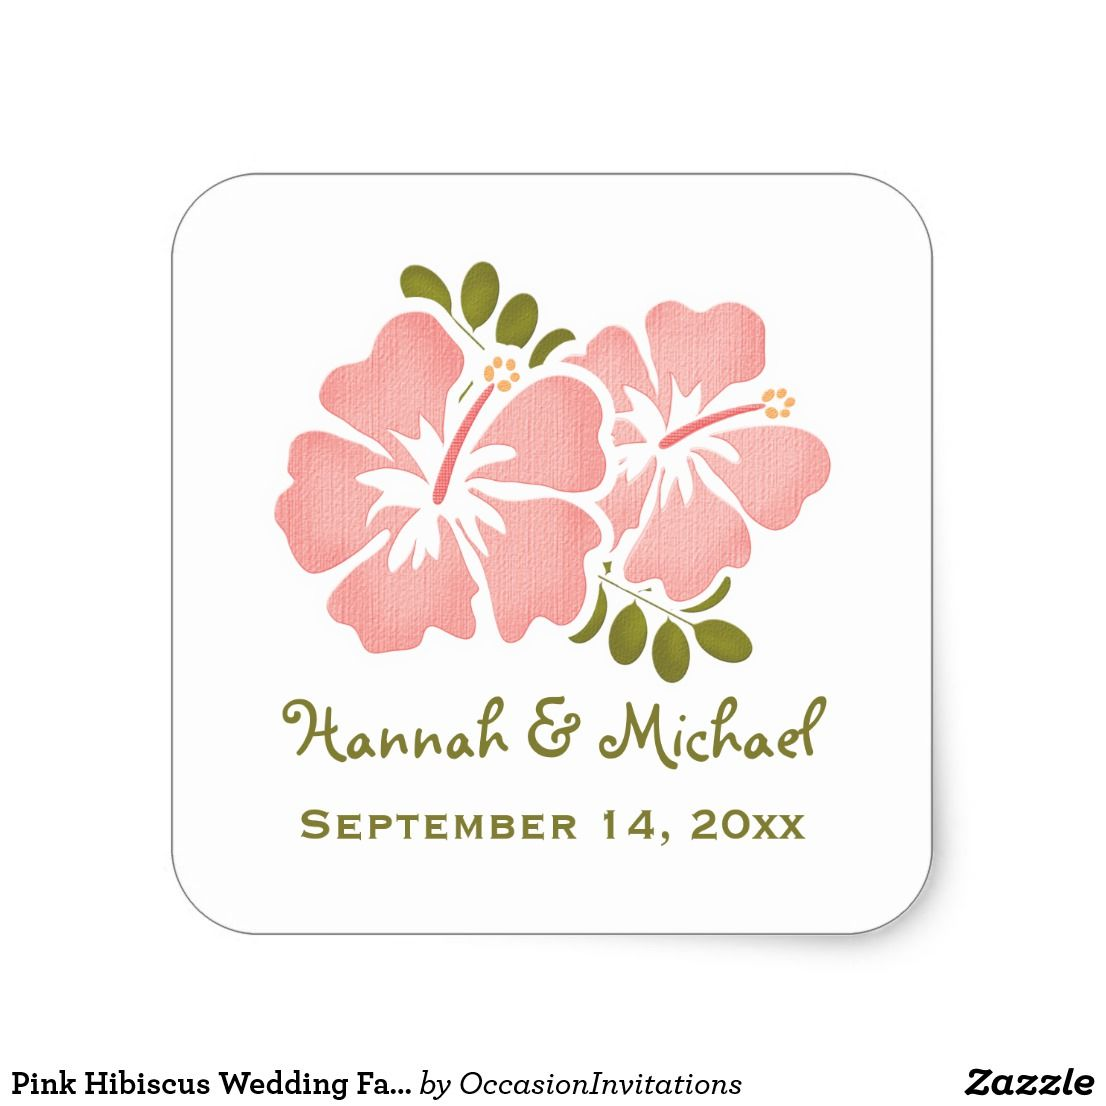 Pink Hibiscus Wedding Favor Sticker Seal | Favors, Weddings and Wedding